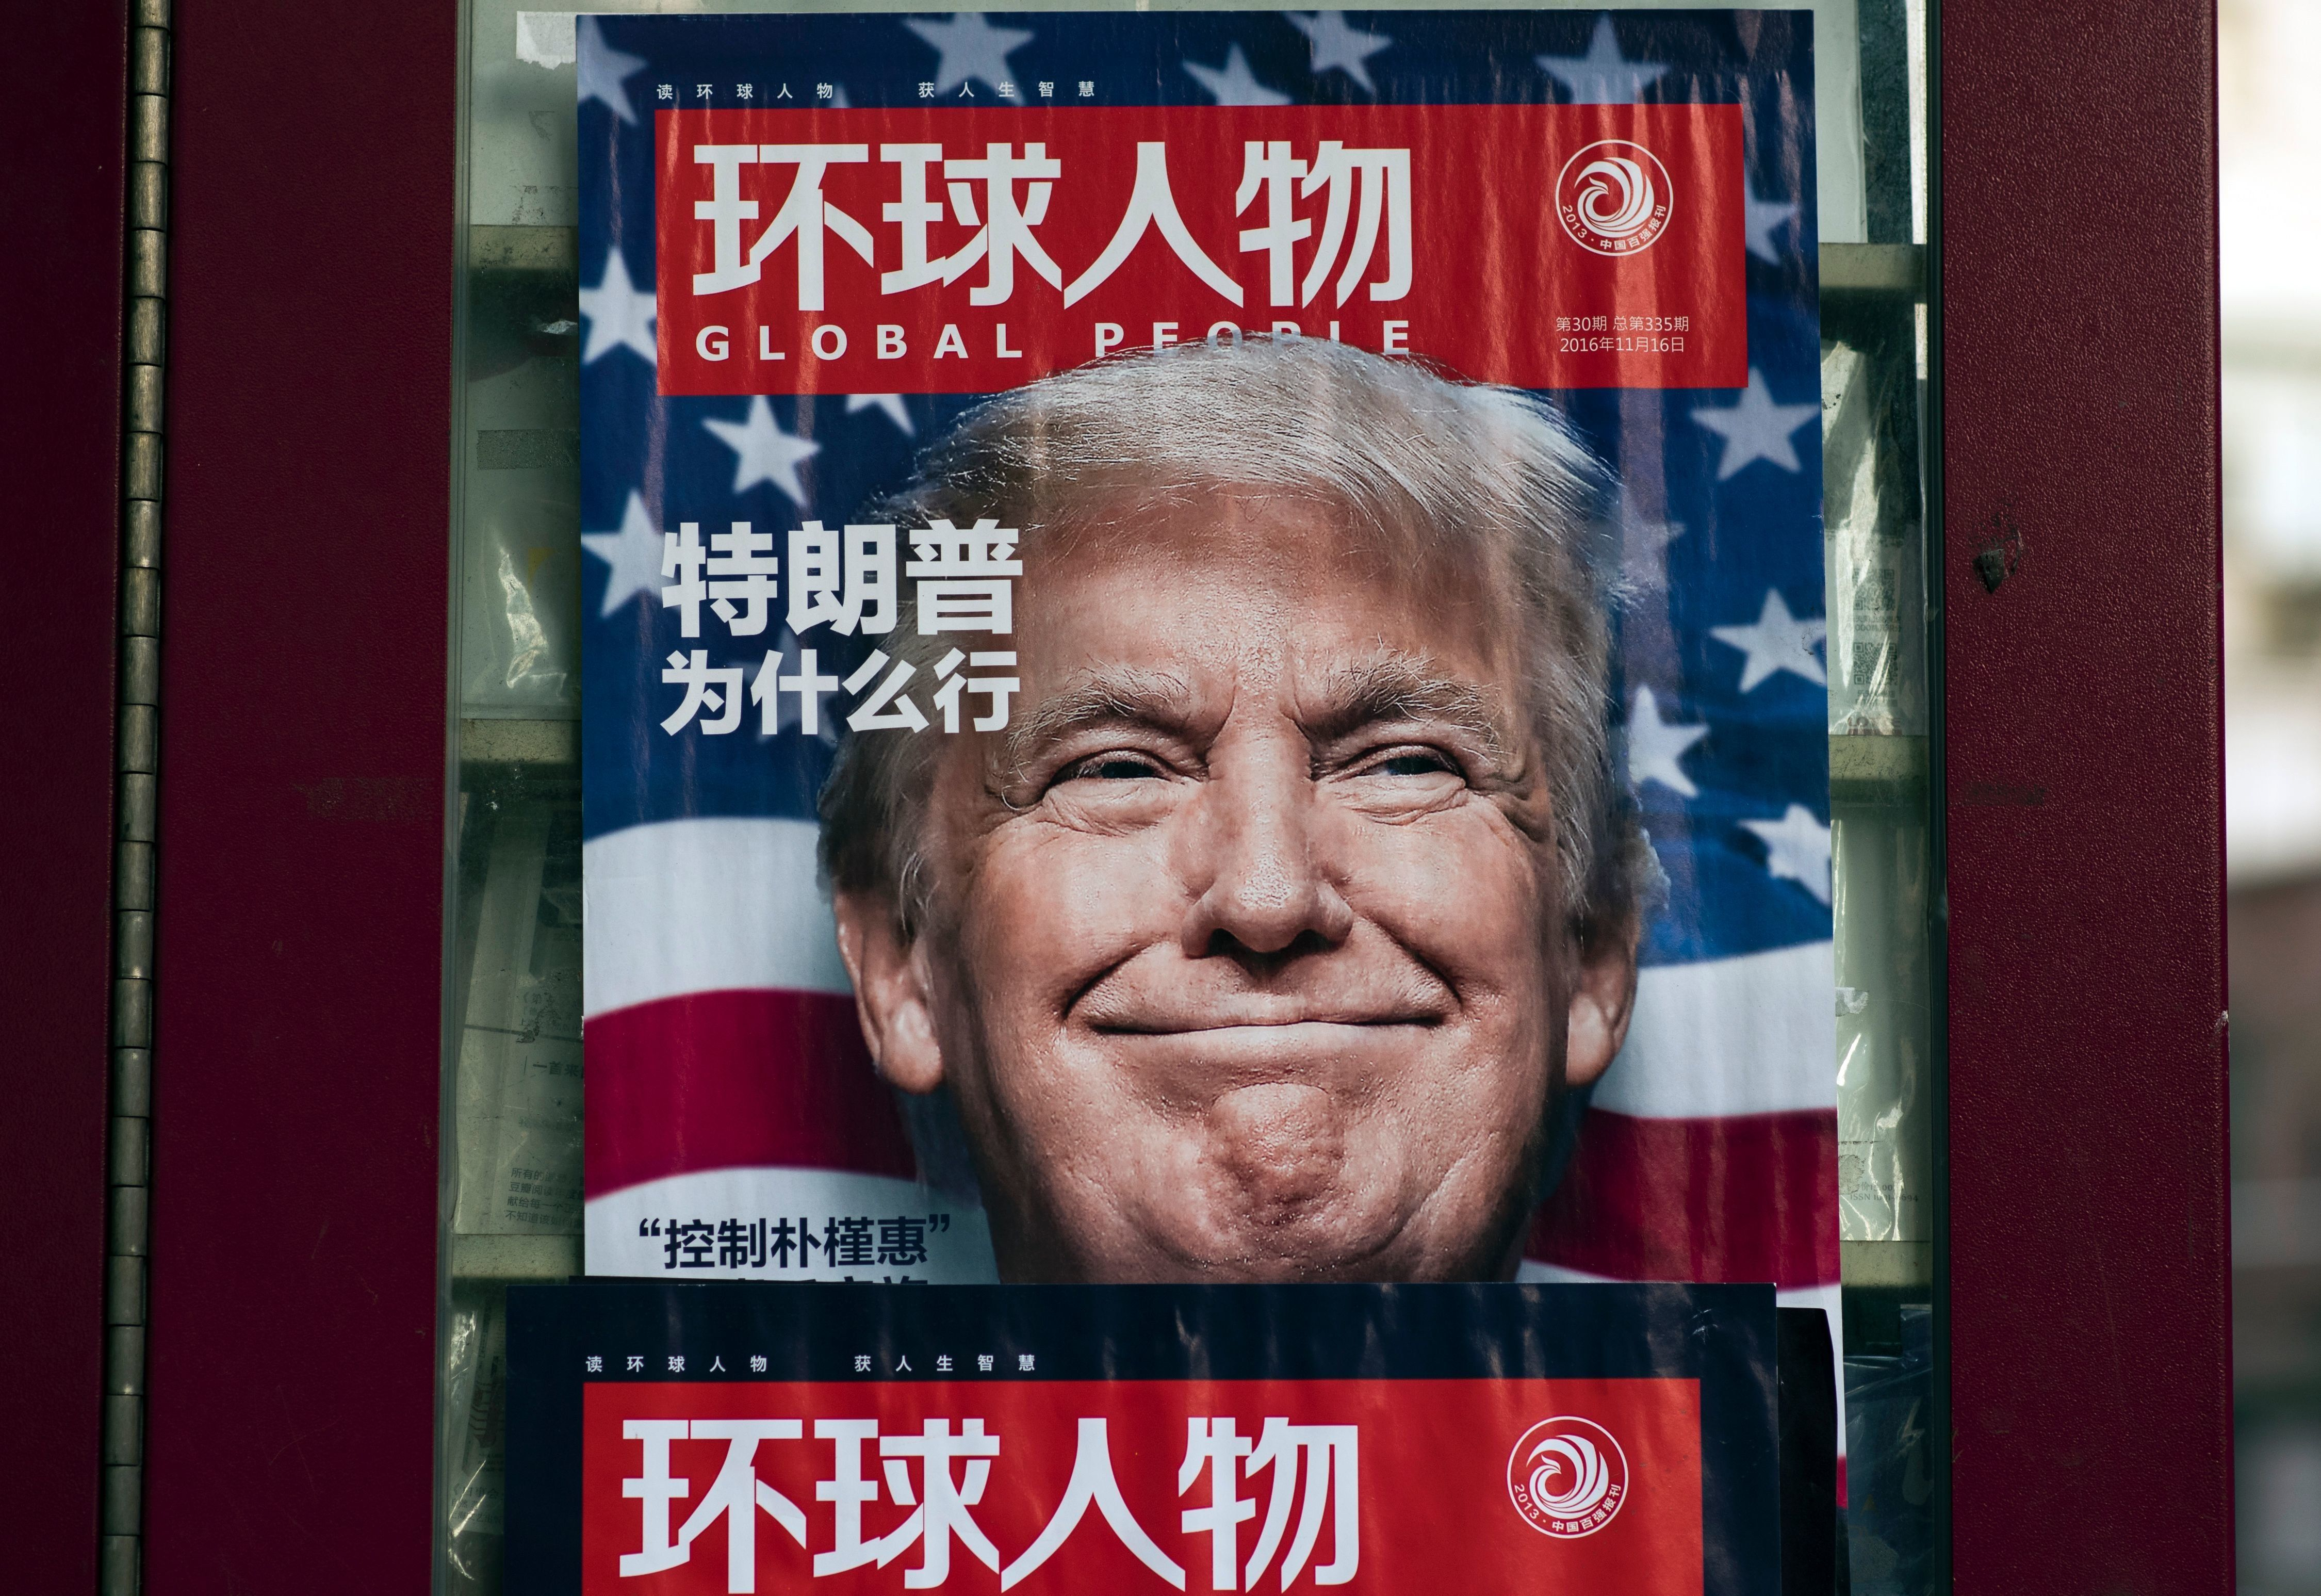 This picture taken on December 14, 2016 shows a advertisement for a magazine featuring US President-elect Donald Trump on the cover at a news stand in Shanghai. China said on December 17 it would return a US naval probe seized in international waters, as it slammed the 'hyping' of the incident as 'inappropriate and unhelpful'. The incident comes amid escalating tensions between China and the United States, with Trump repeatedly infuriating Beijing by questioning longstanding US policy on Taiwan, calling Beijing a currency manipulator and threatening Chinese imports with punitive tariffs.  / AFP / Johannes EISELE        (Photo credit should read JOHANNES EISELE/AFP/Getty Images)